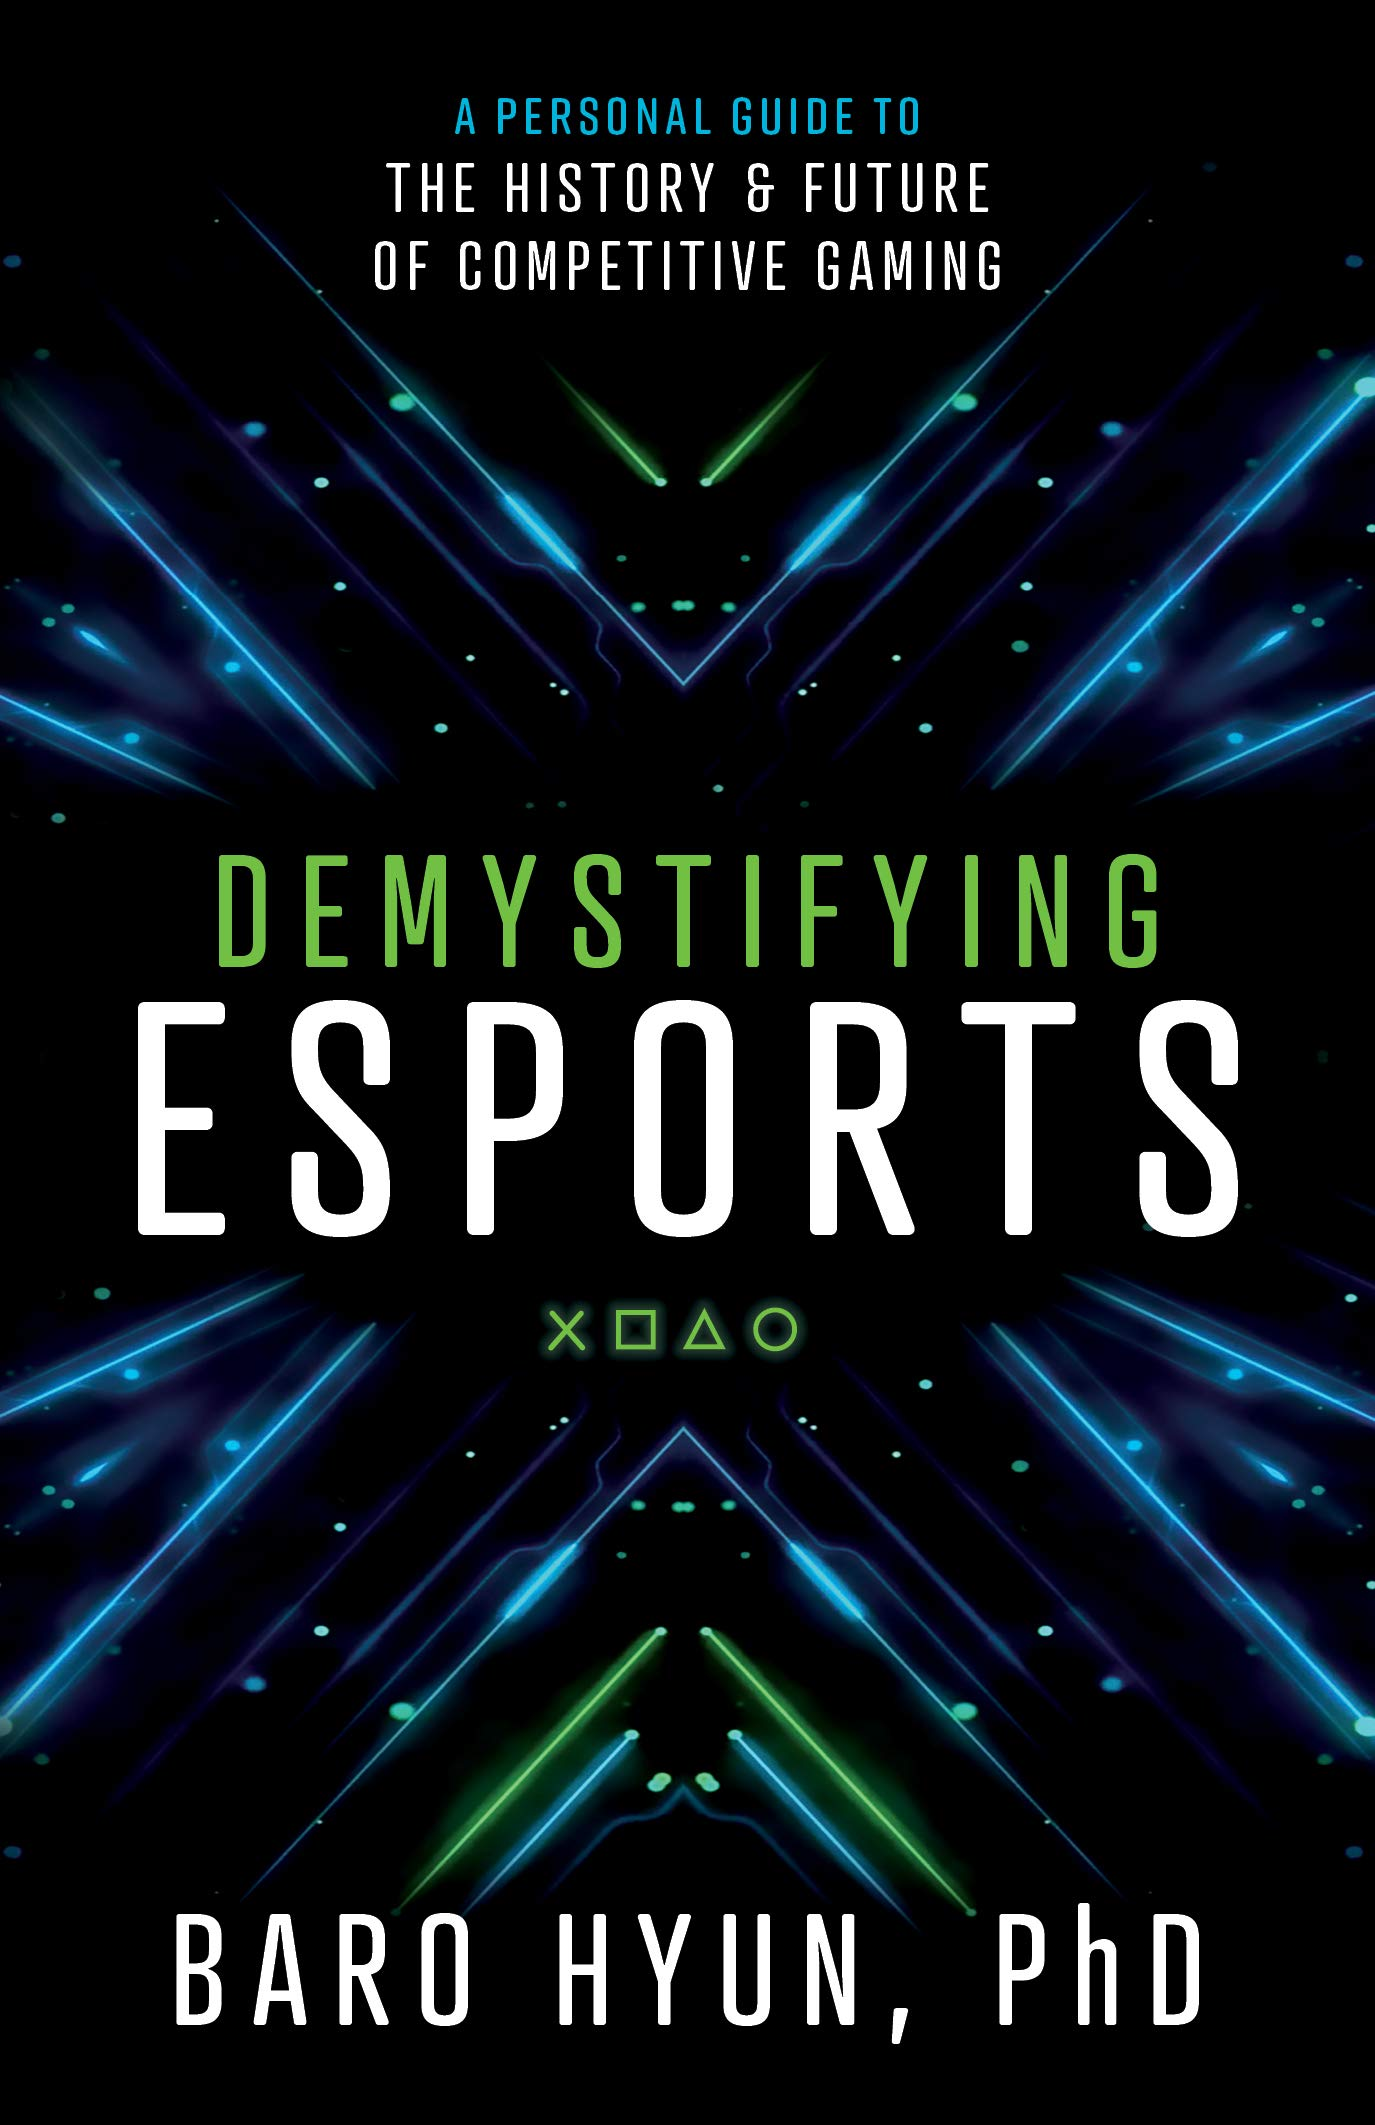 Demystifying Esports: A Personal Guide to the History and Future of Competitive Gaming